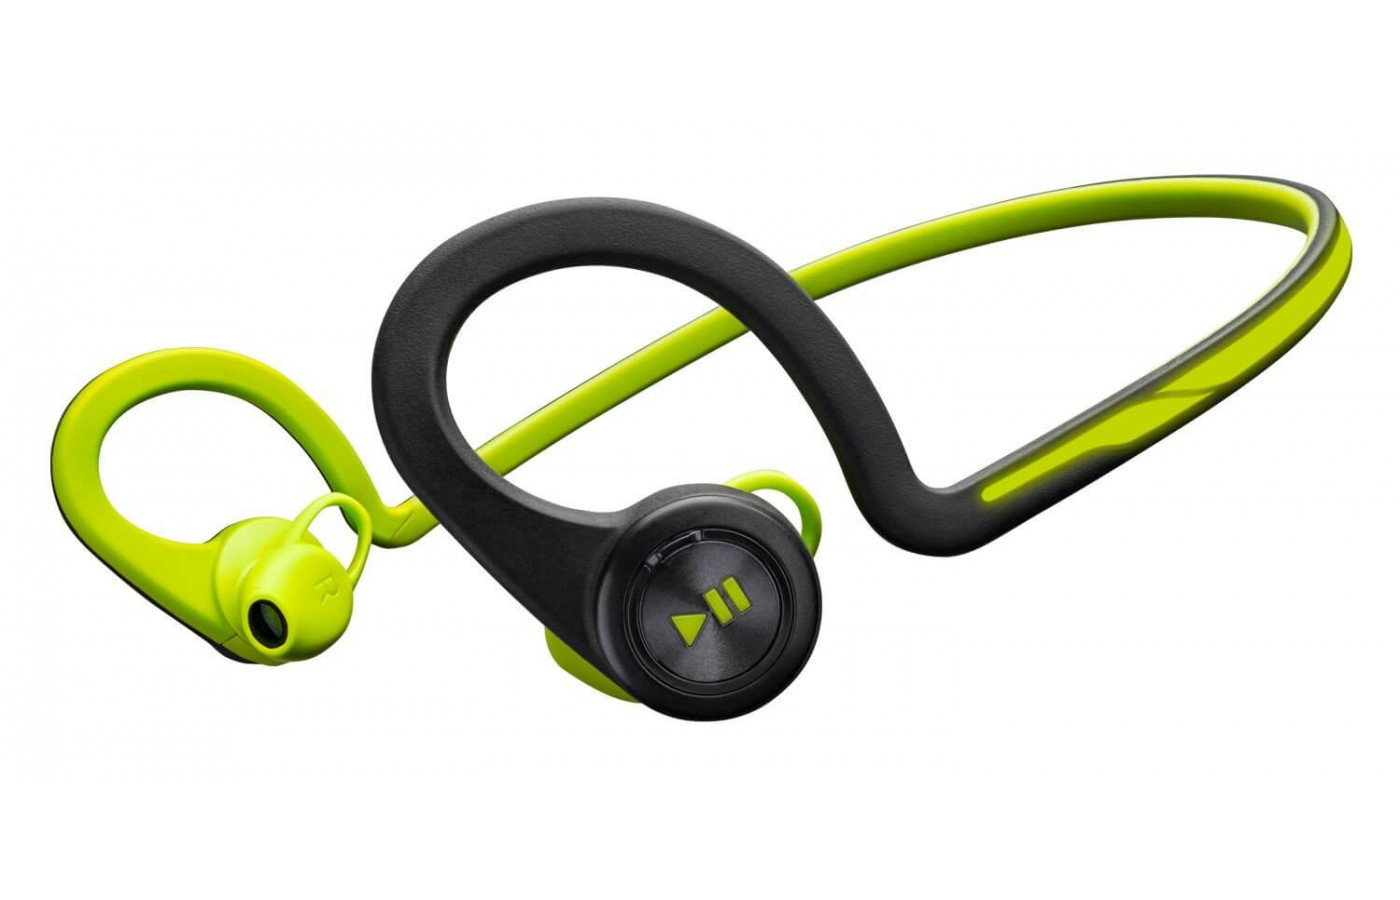 An angled view of the Plantronics Backbeat Fit.